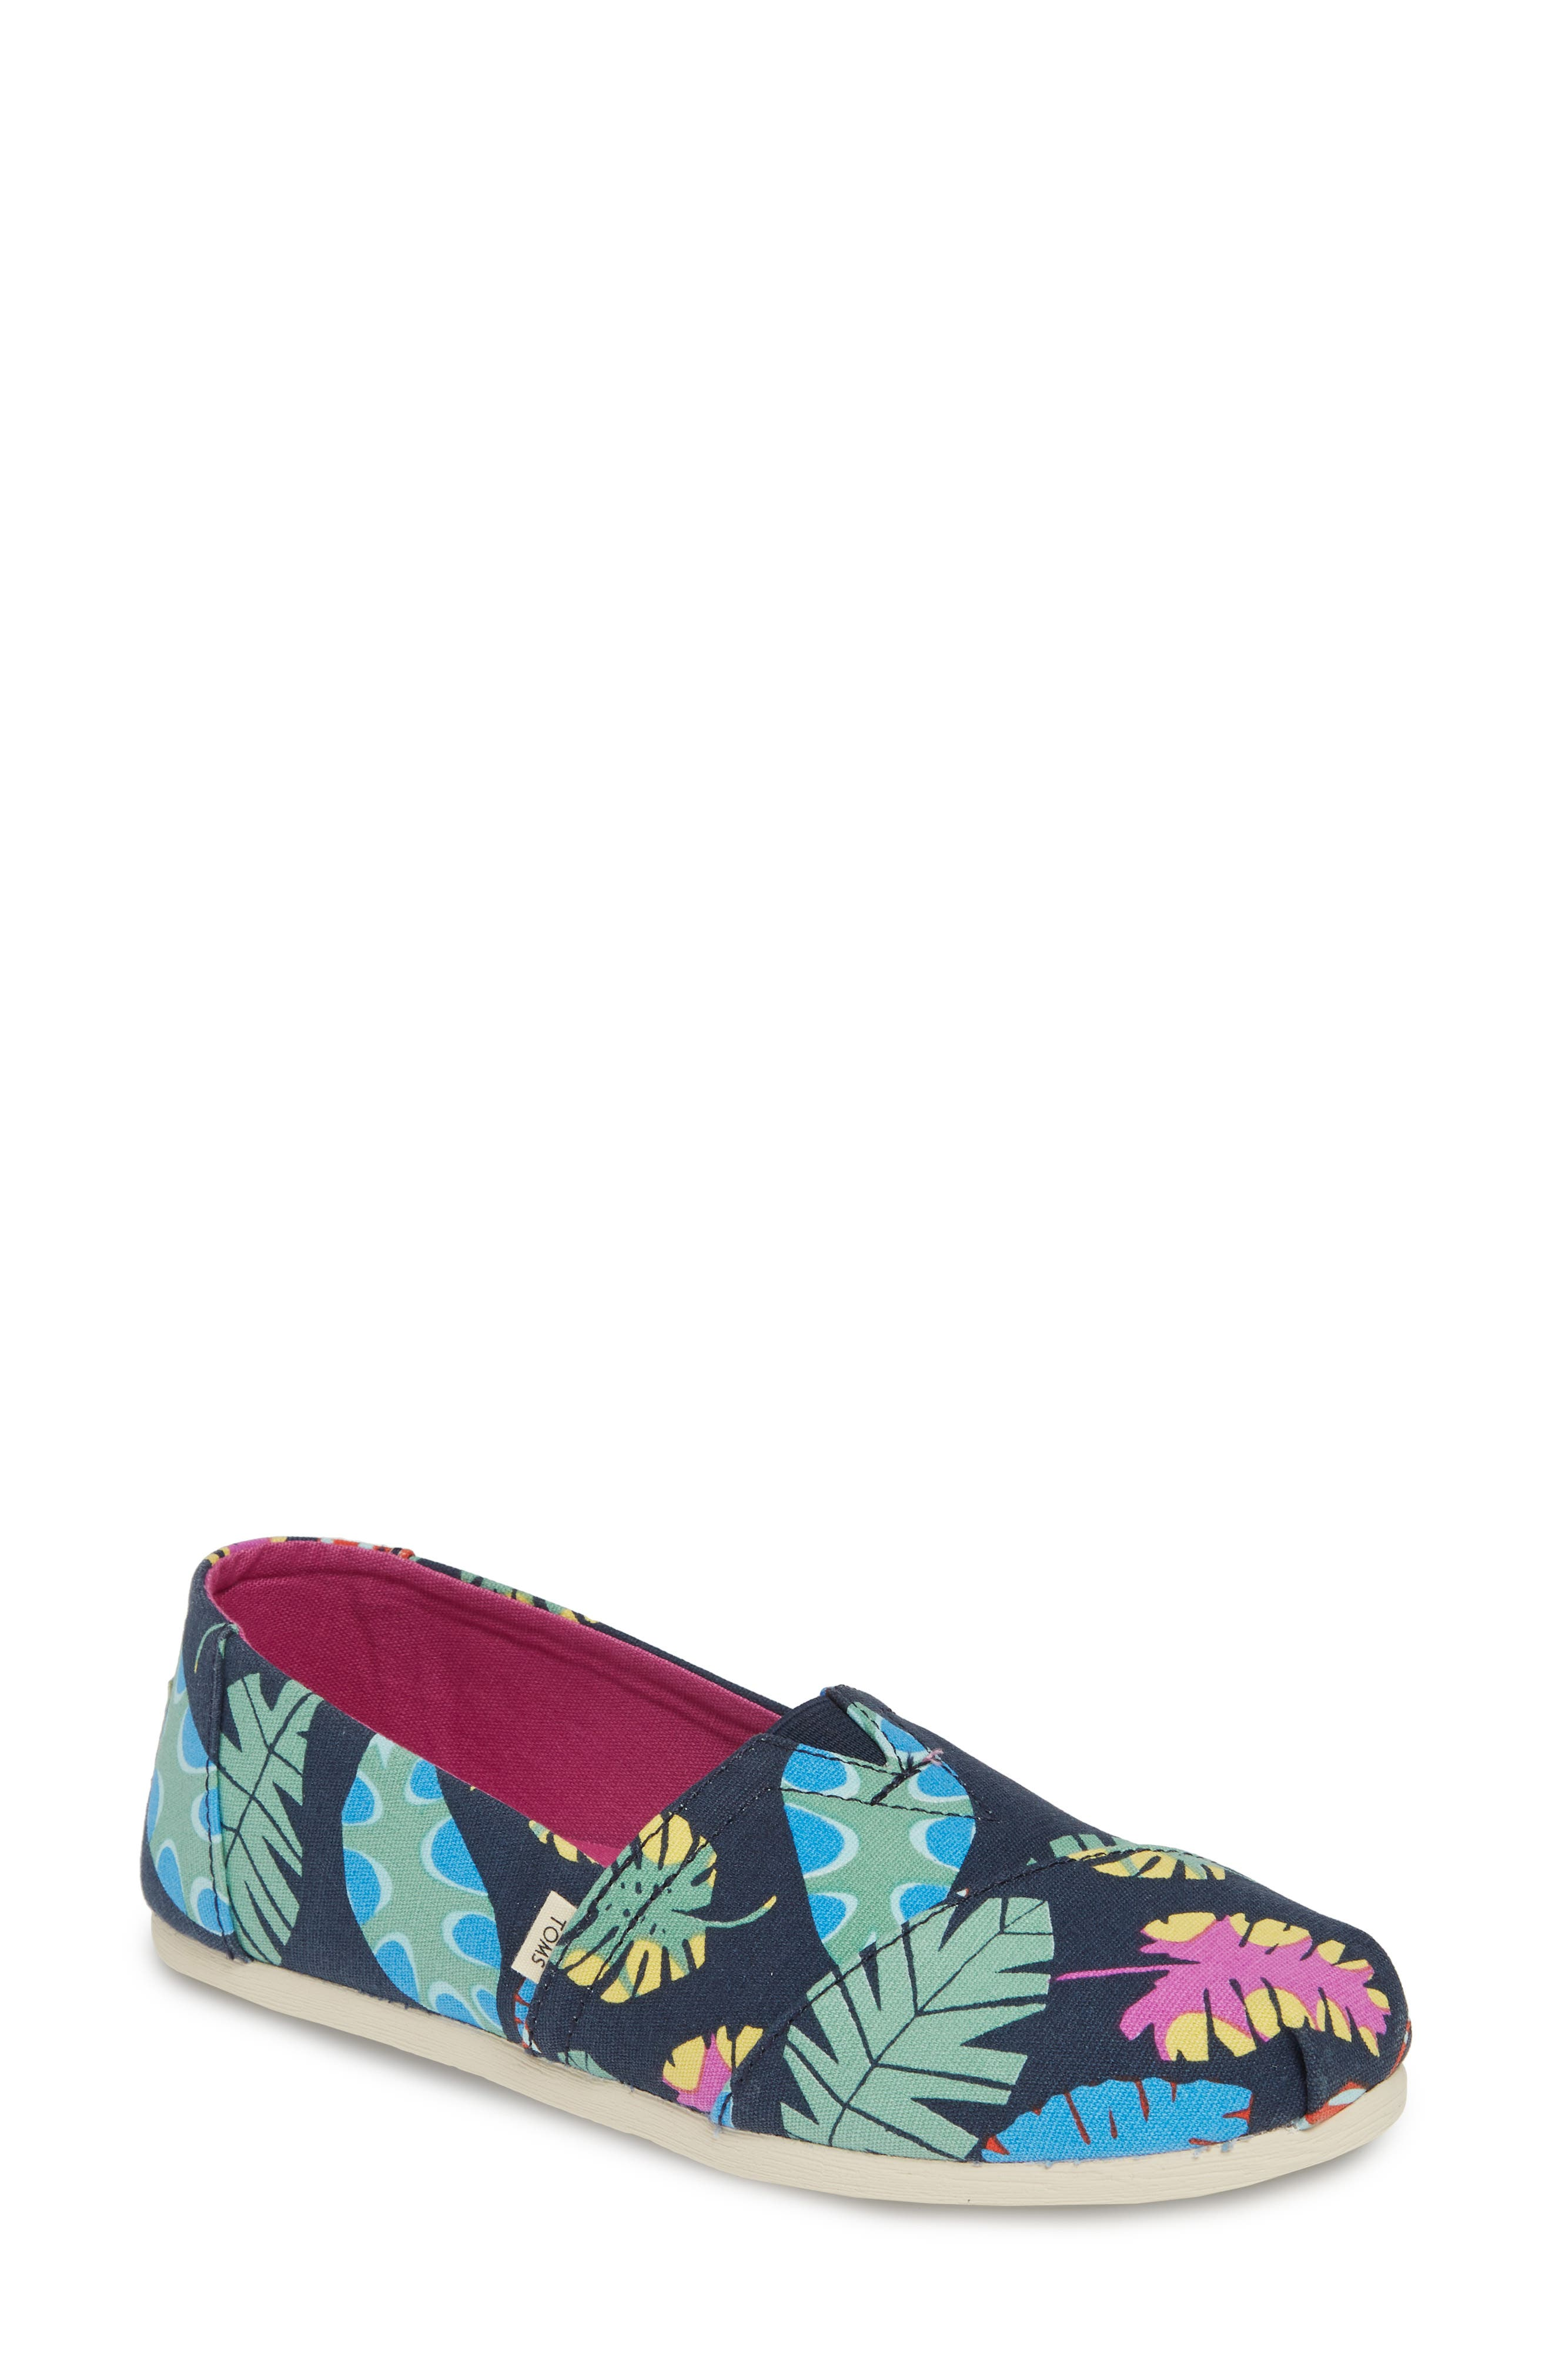 Toms Classic Canvas Slip-On, Blue